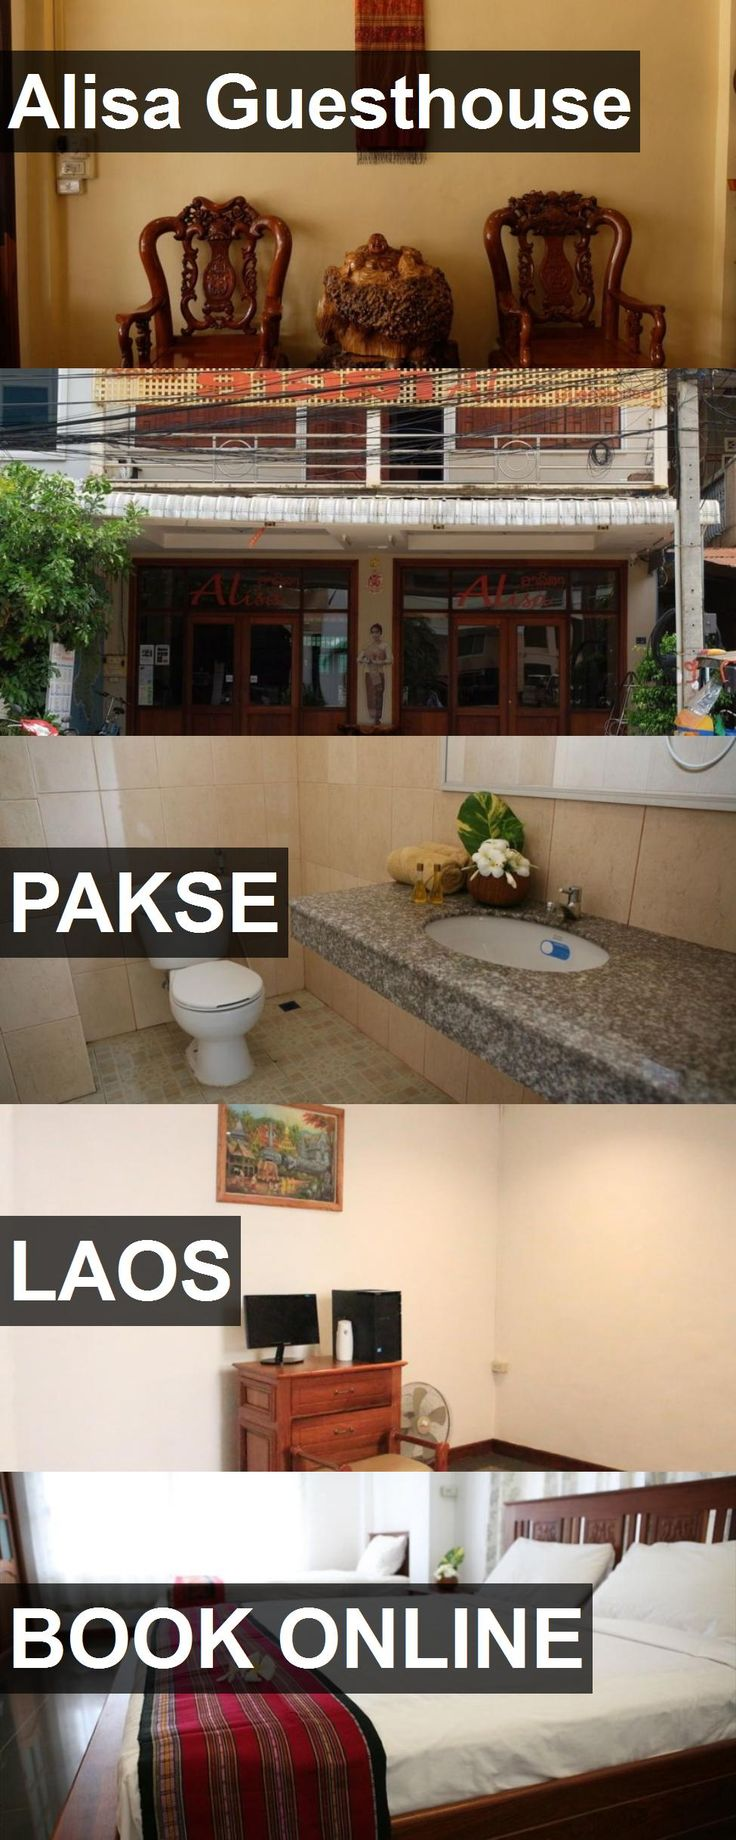 Hotel Alisa Guesthouse in Pakse, Laos. For more information, photos, reviews and best prices please follow the link. #Laos #Pakse #travel #vacation #hotel